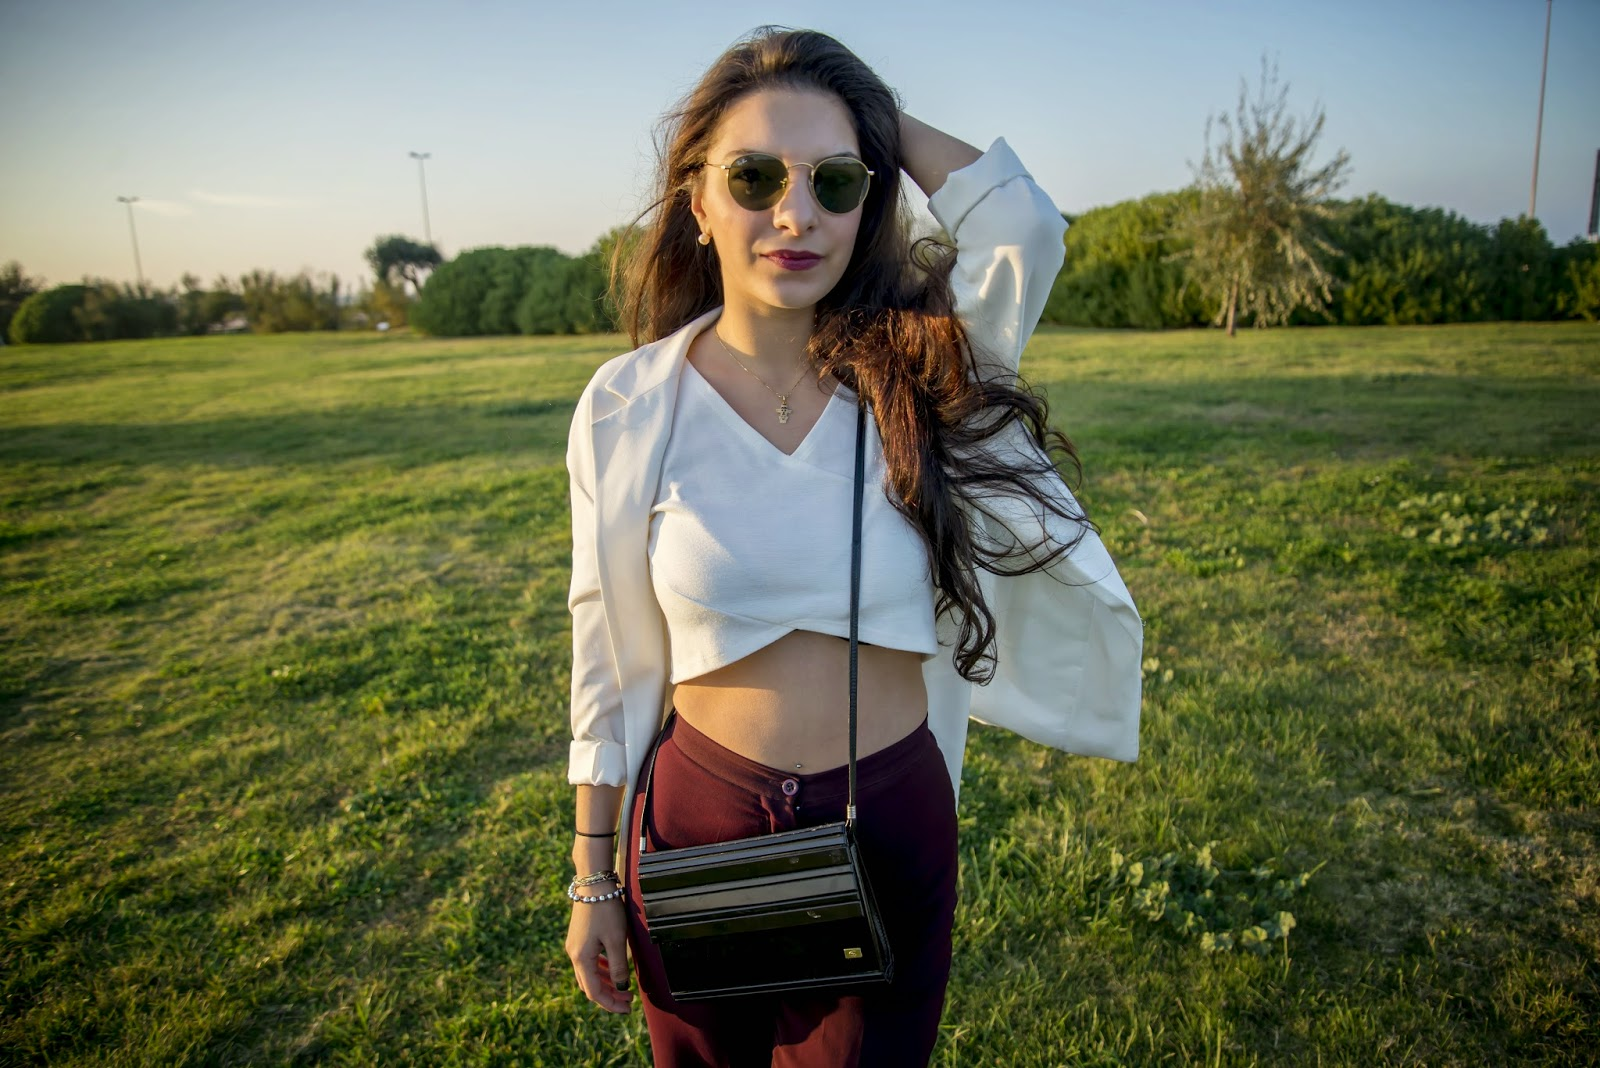 outfit of the day, park, crop top, stradivarius blazer, sunny day, fashion blogger, fashion trends 2014, Fall trends 2014